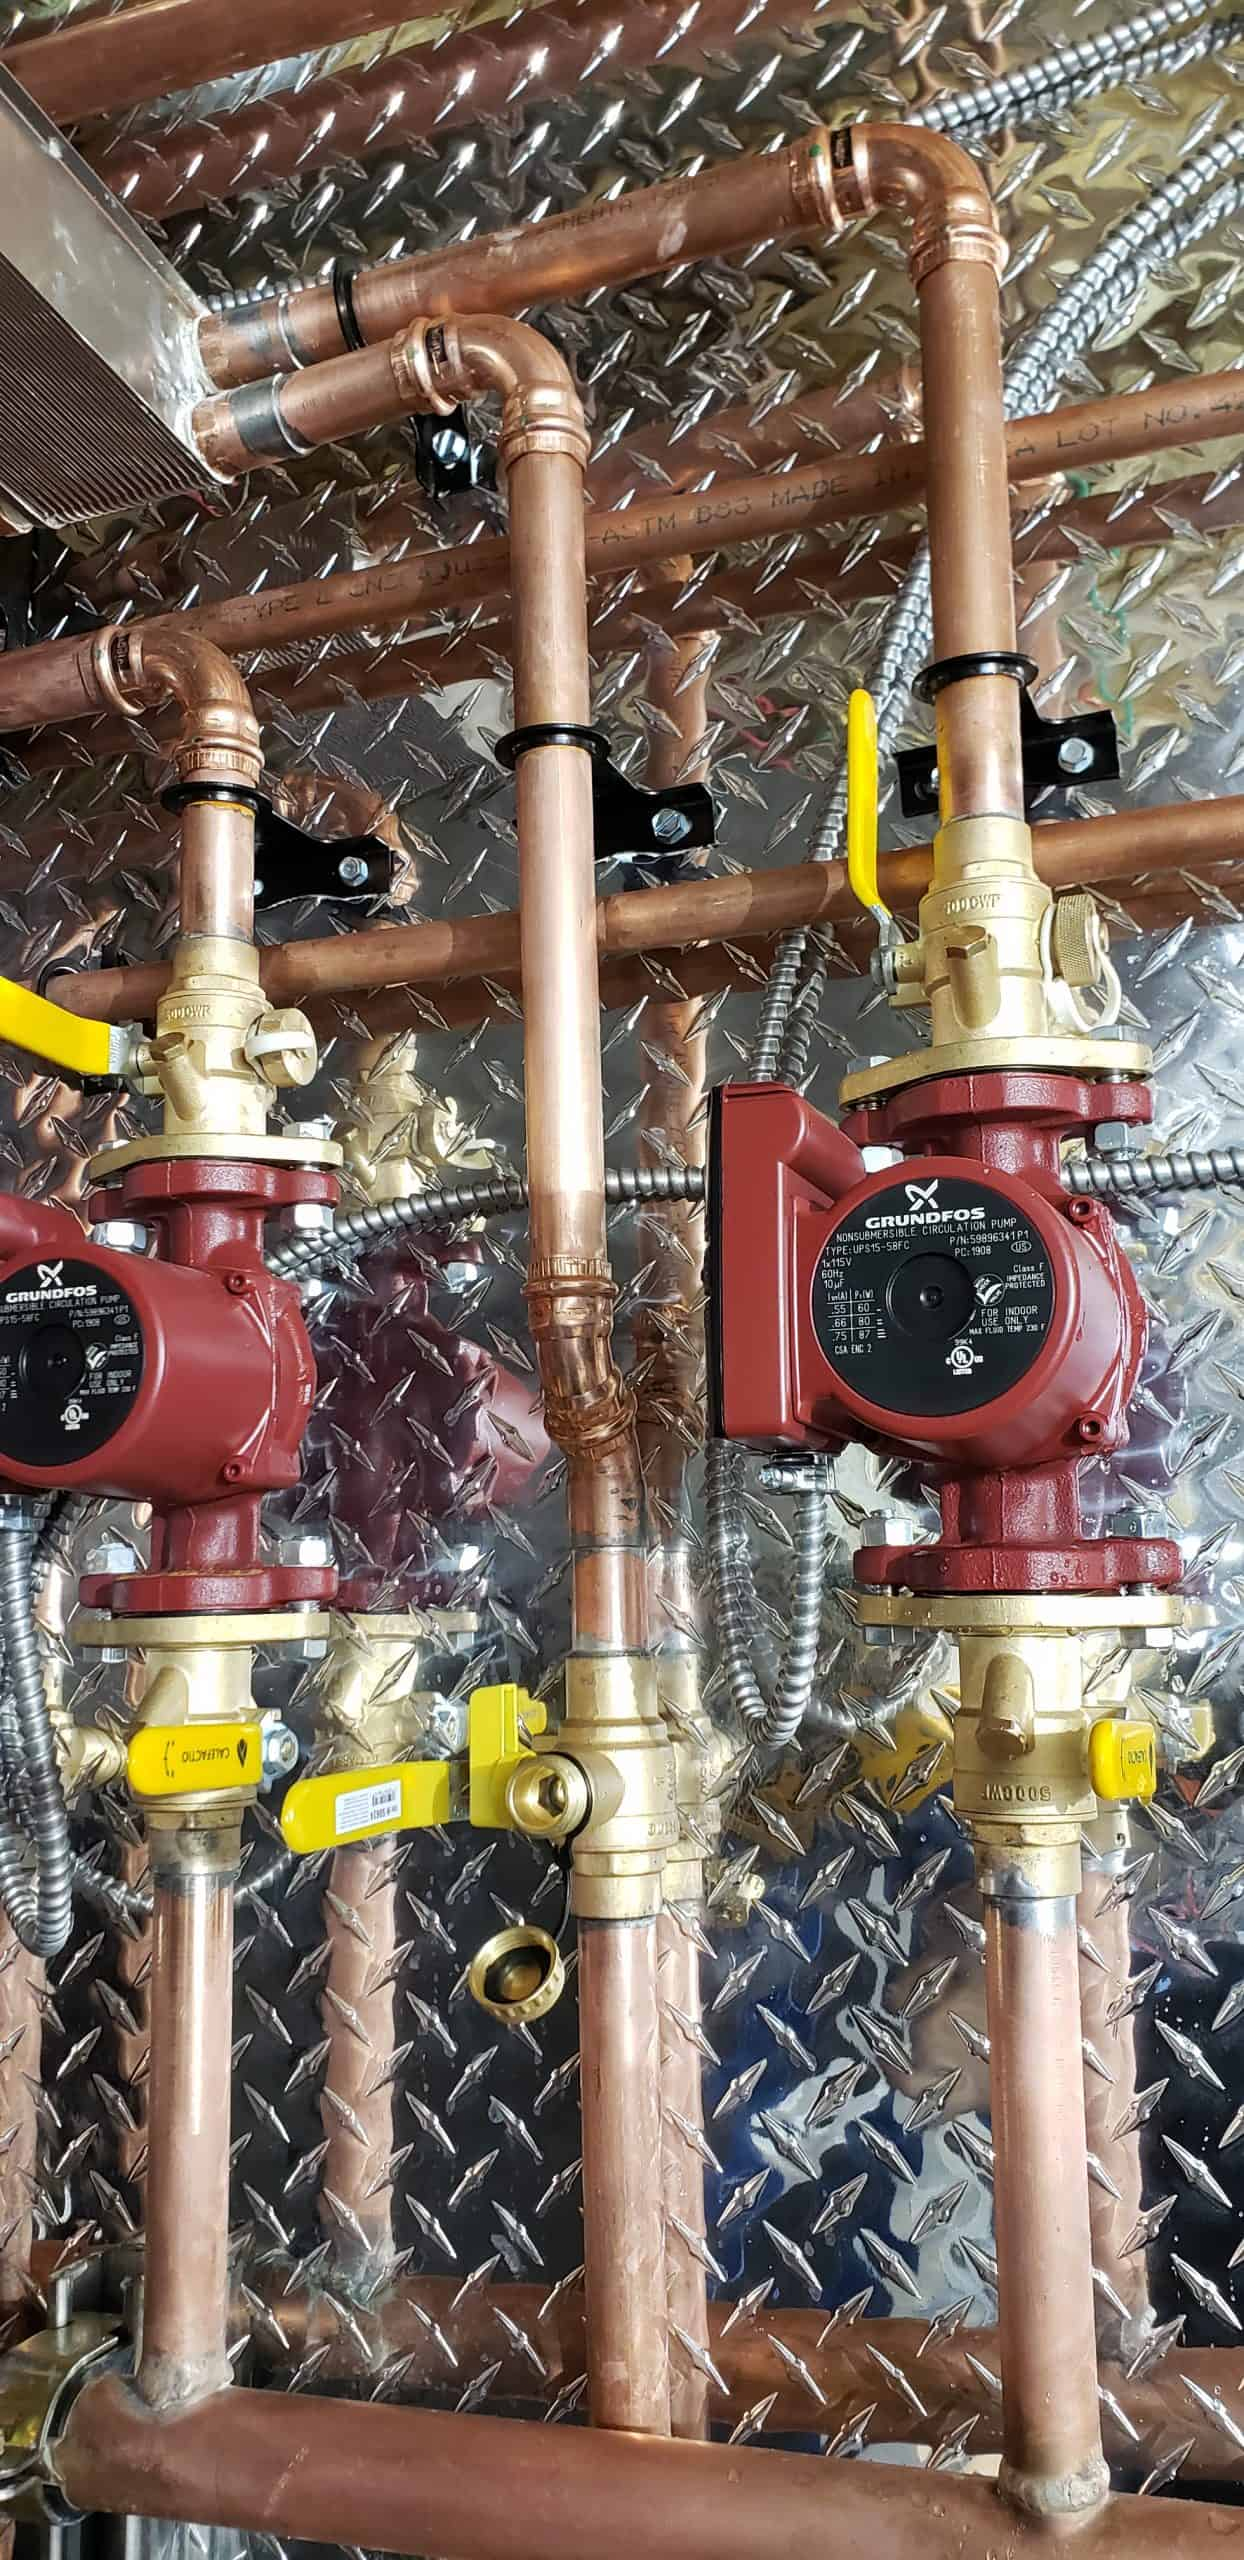 radiant heating circulator pumps